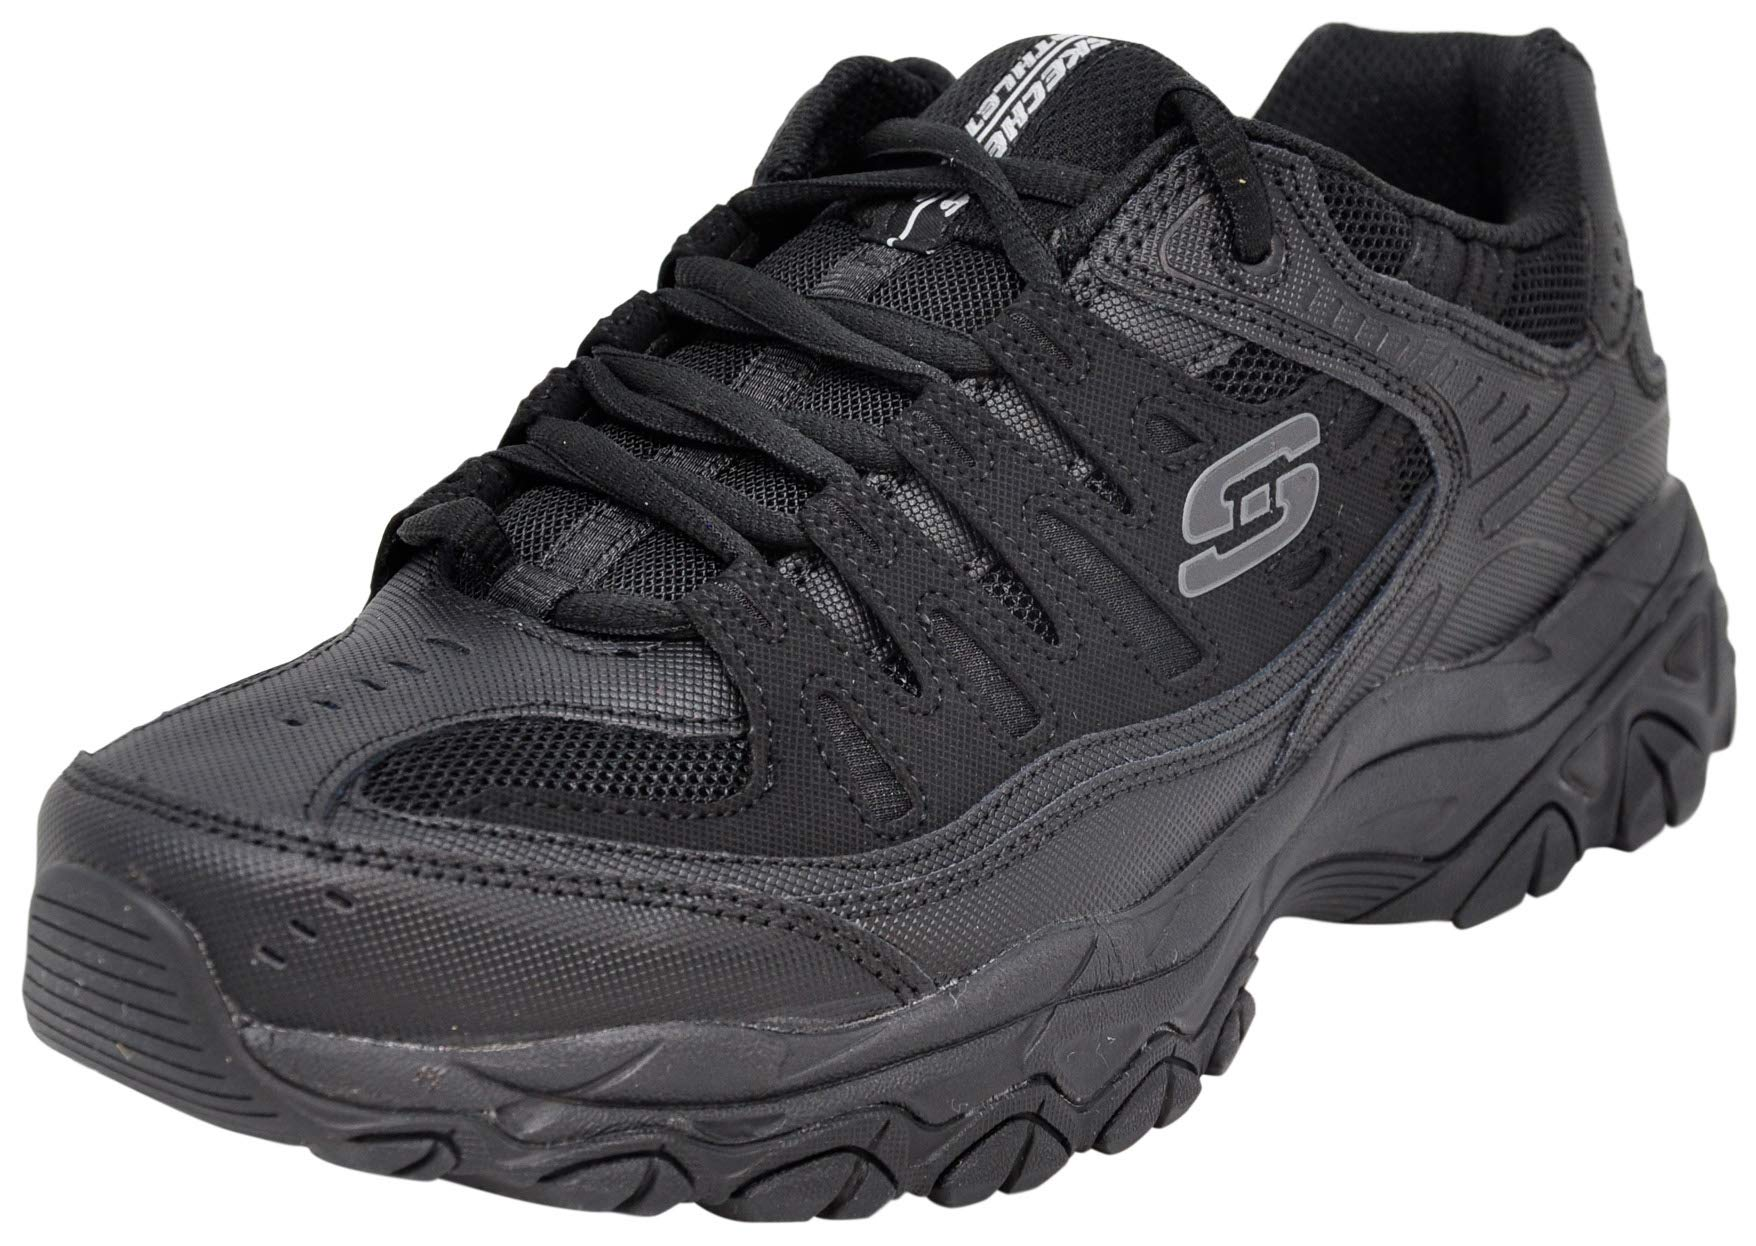 Skechers Men Afterburn Lace-Up Sneaker, Black/Black, 10.5 M US